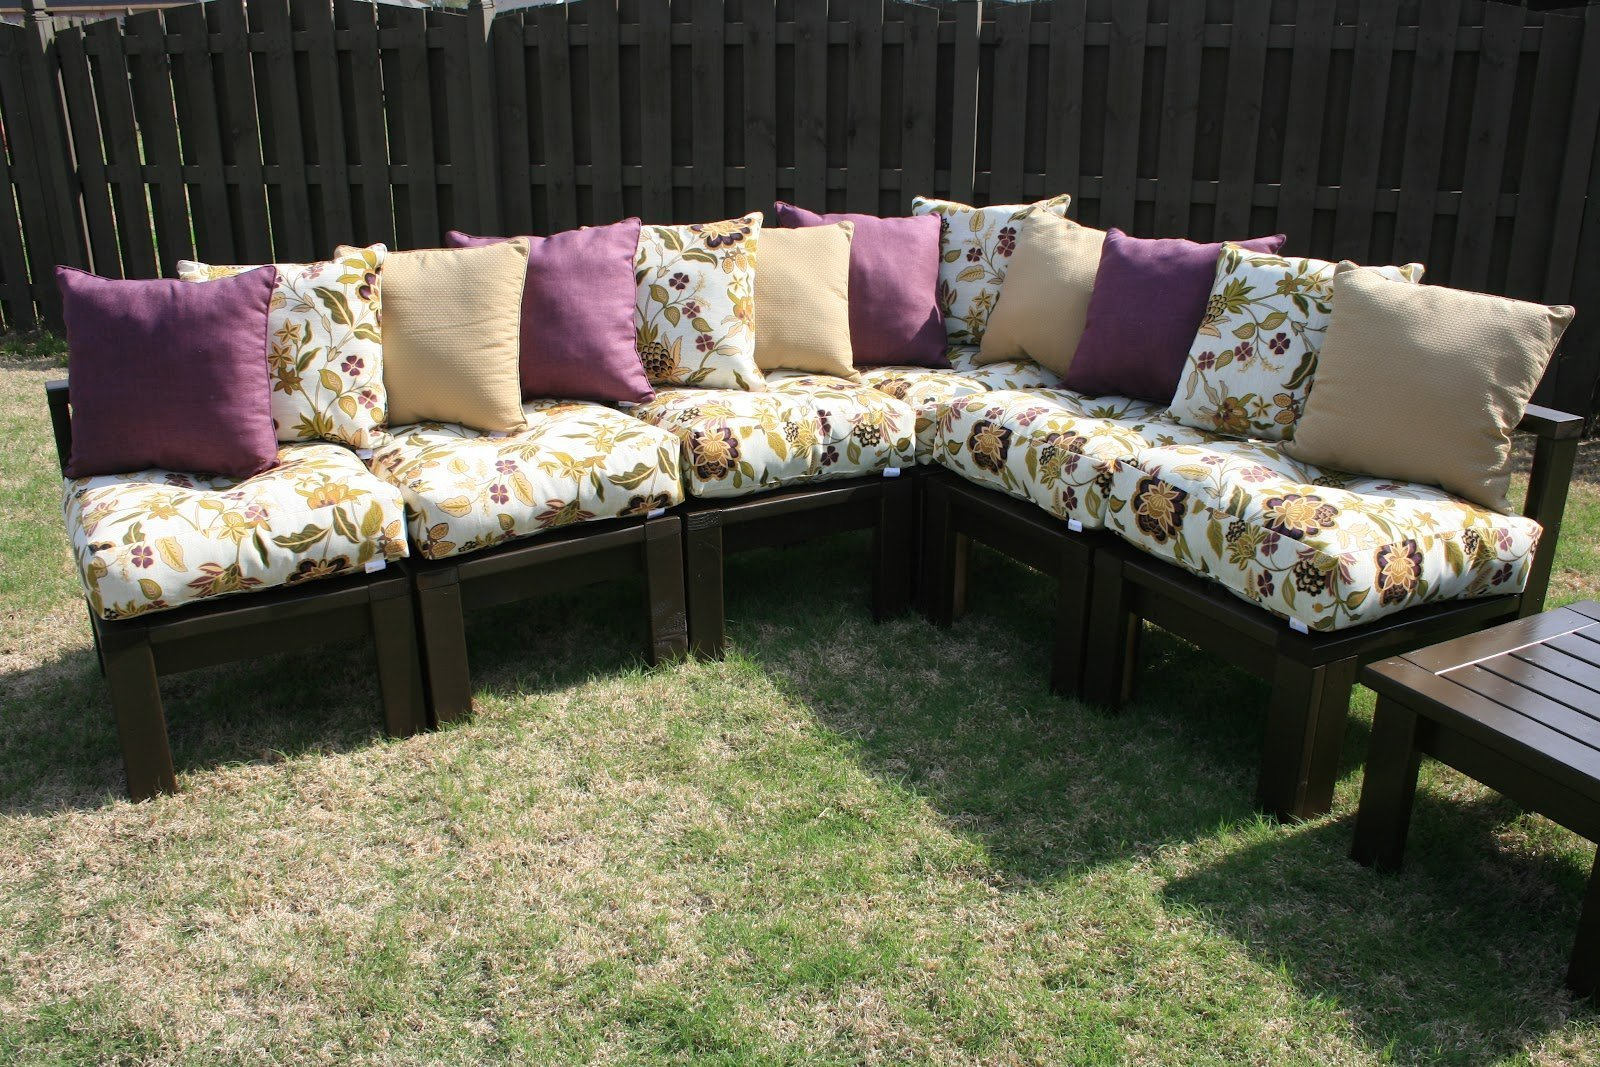 diy outdoor chair cushion covers walmart lounge chairs patio furniture cushions home design